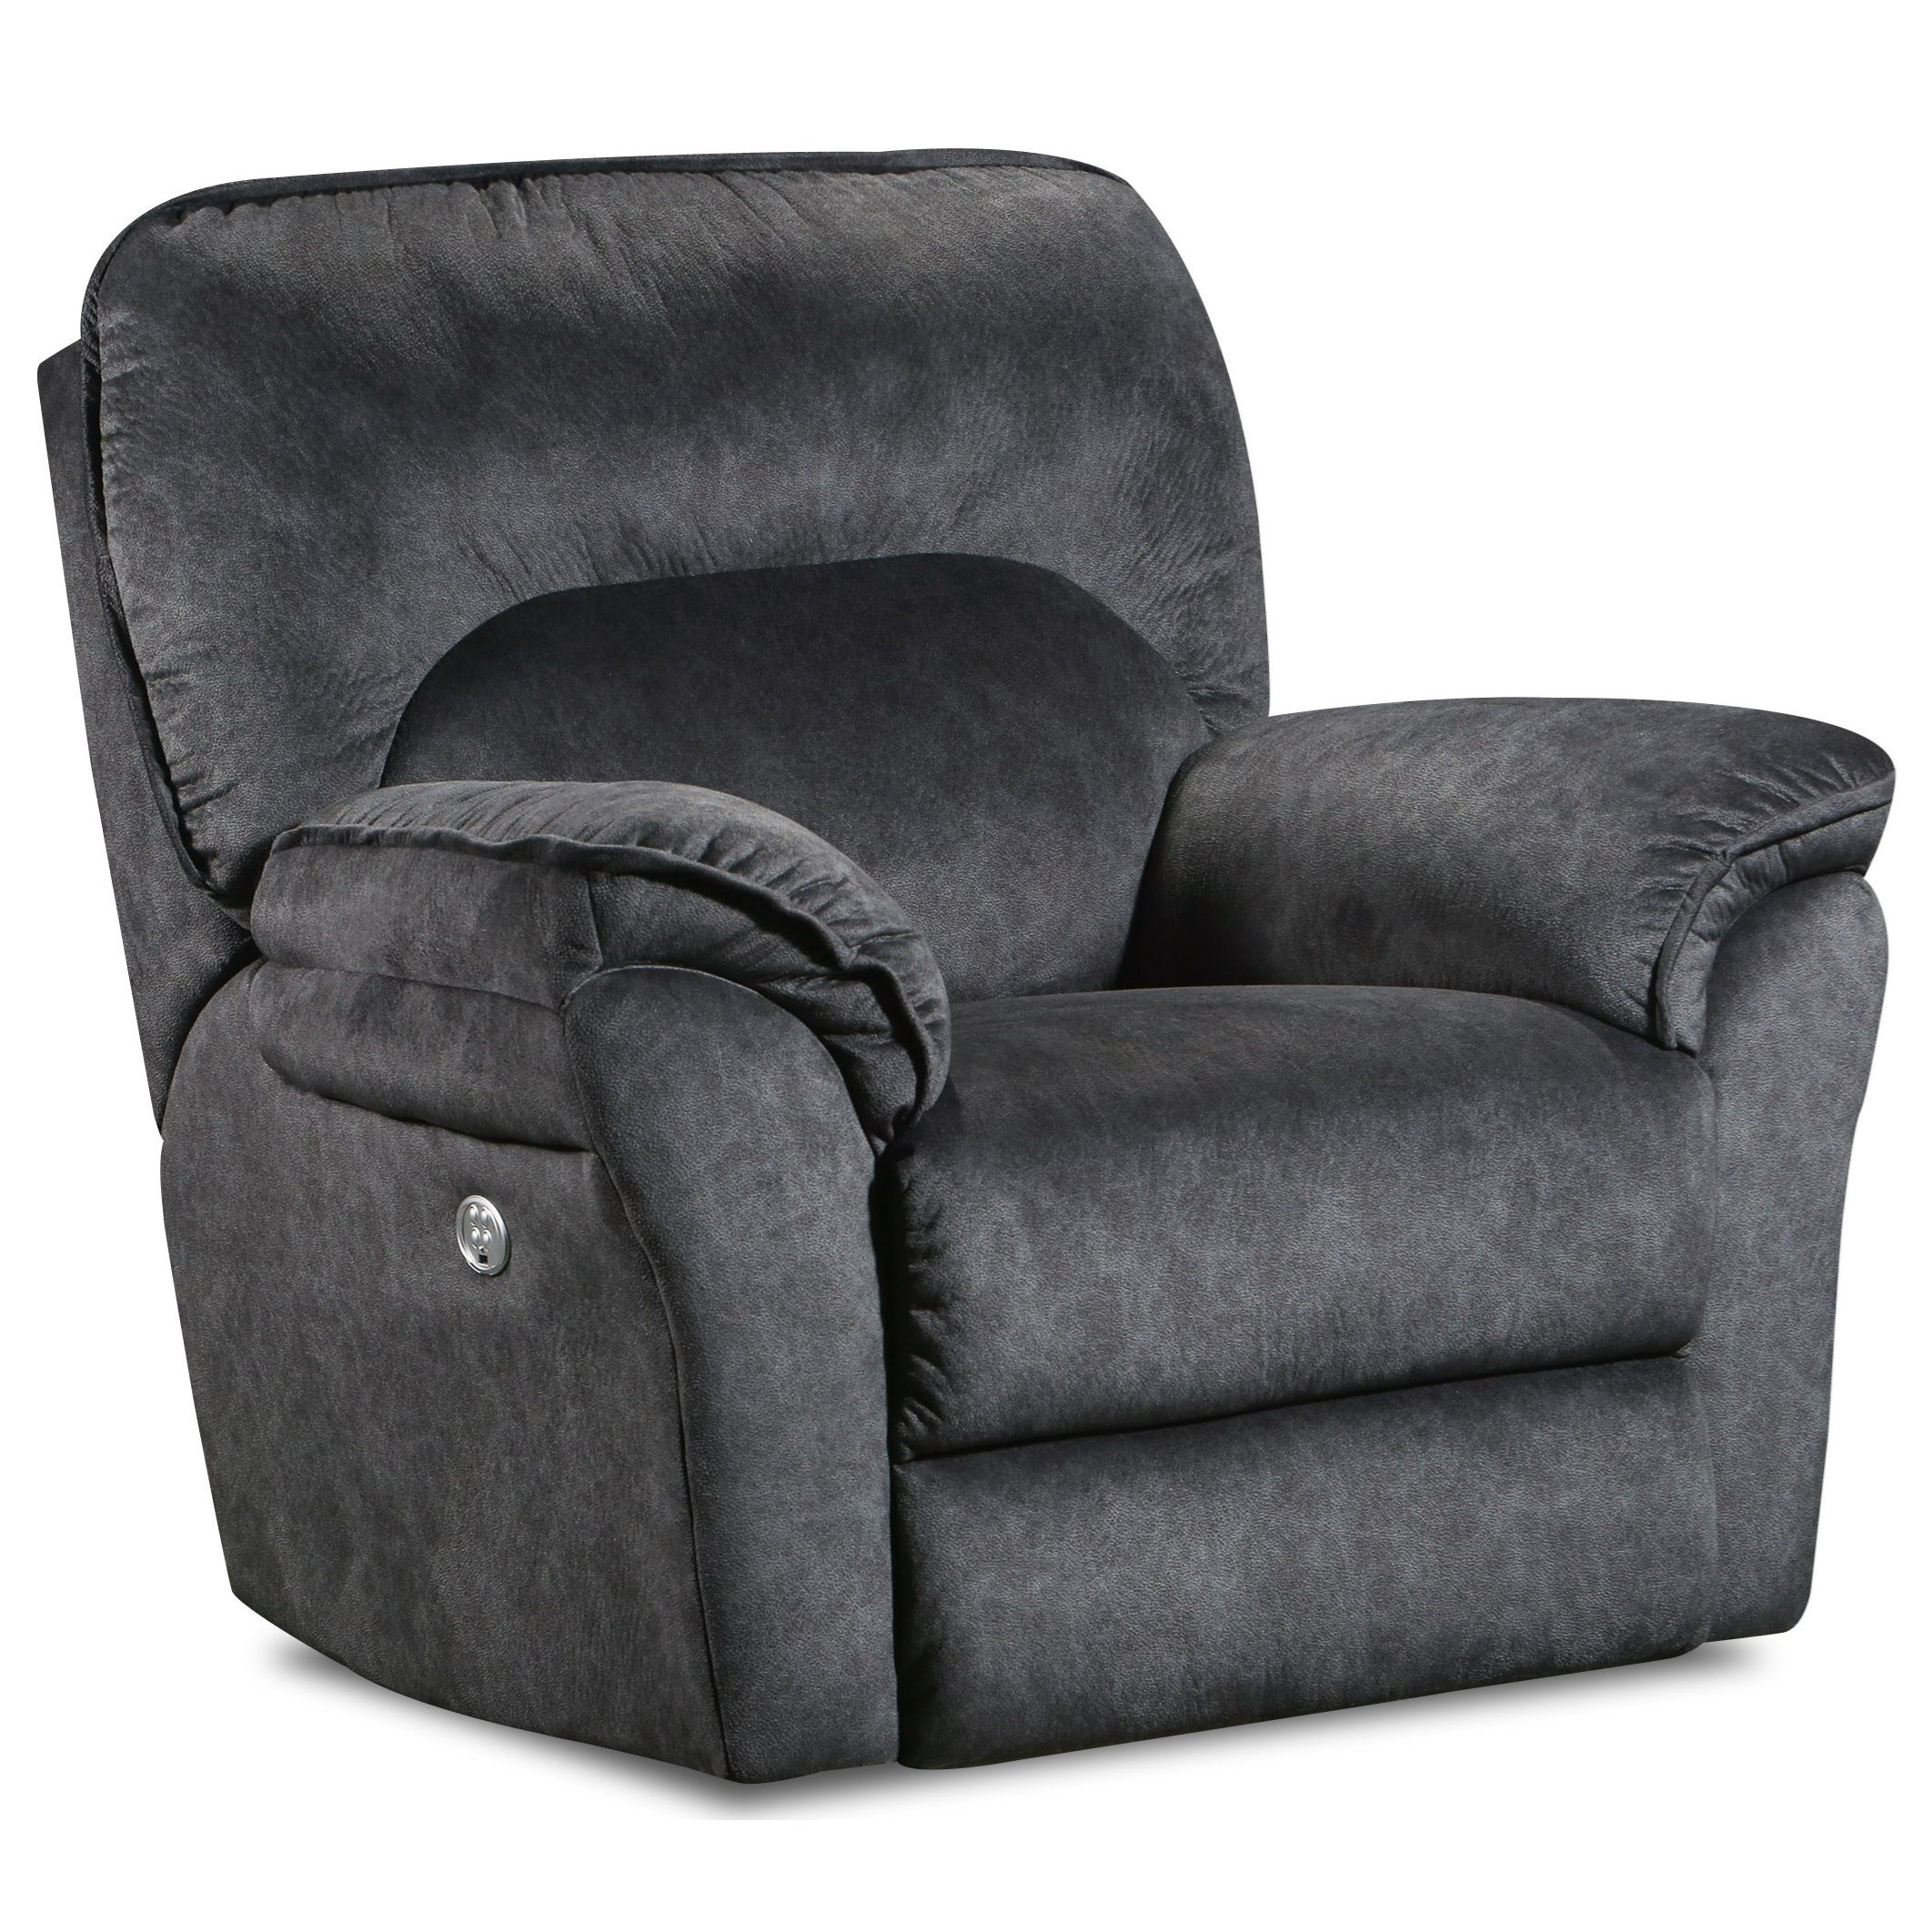 Full Ride Power Rocker Recliner by Southern Motion at Sparks HomeStore